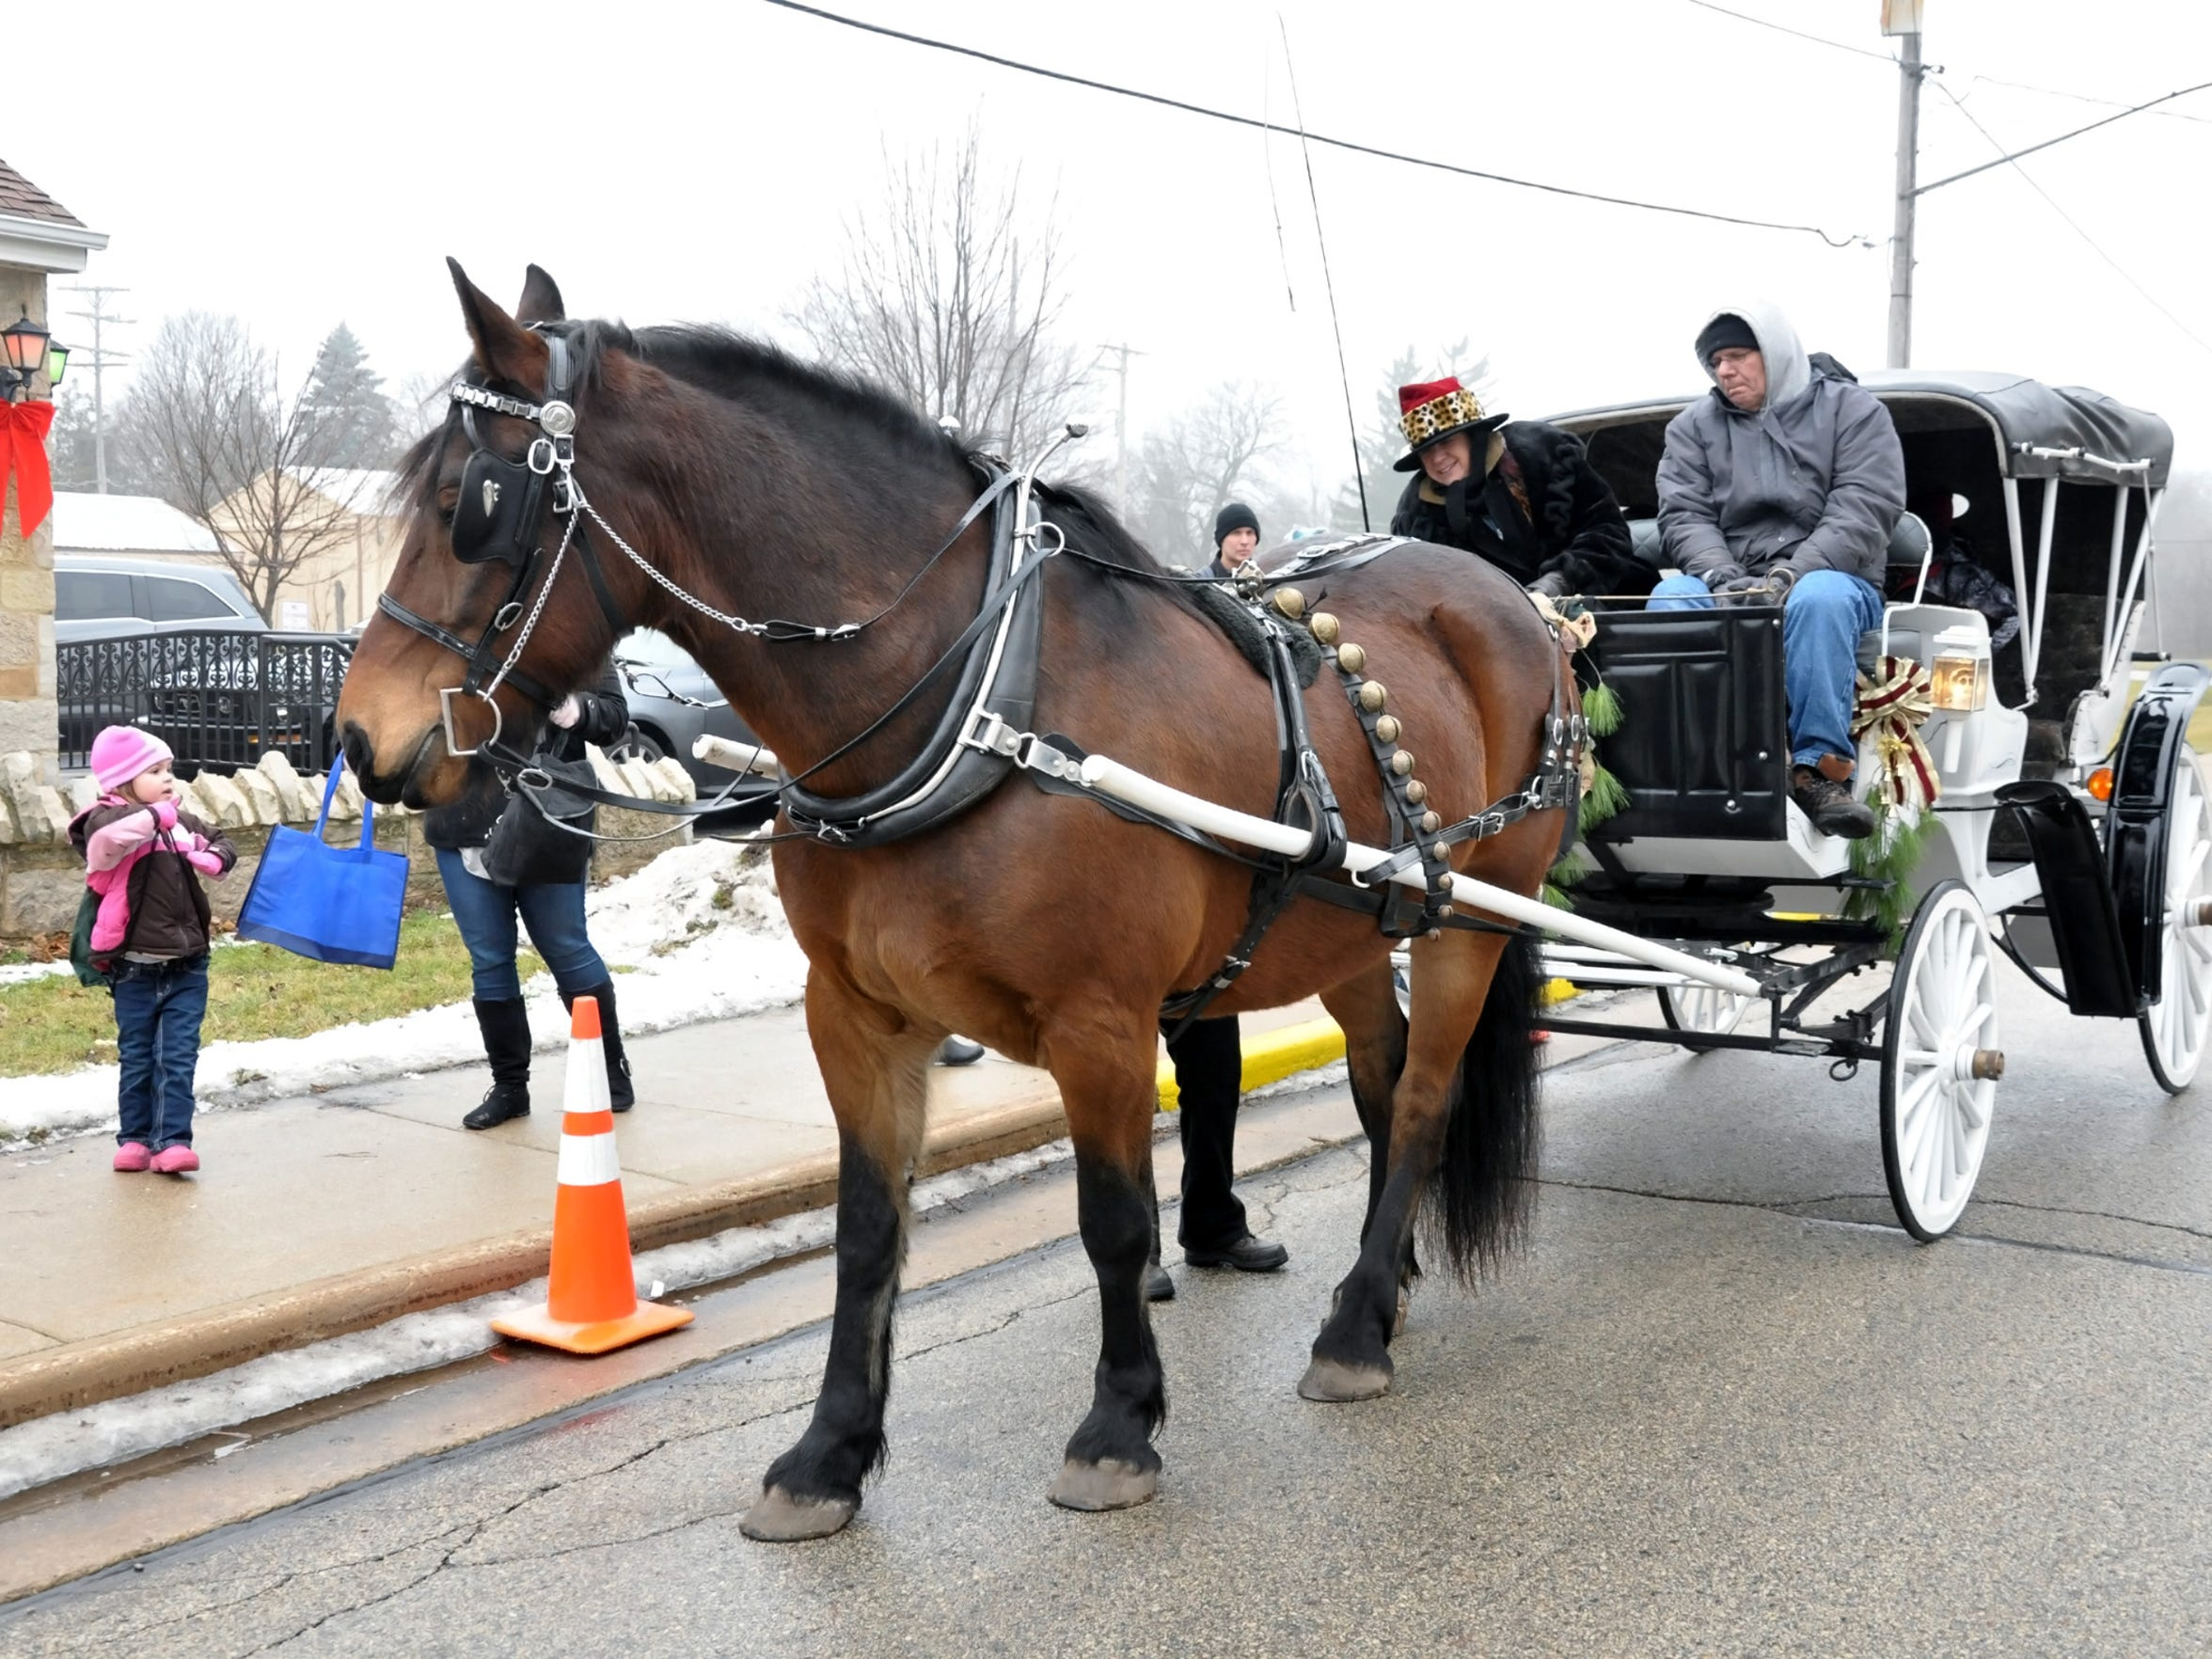 Horse-drawn carriages, an appearance by Santa, caroling by local churches and donations being collected for the Kettle Moraine Food Pantry are all among the holiday festivities at Christmas in Wales coming up Saturday, Dec. 9.